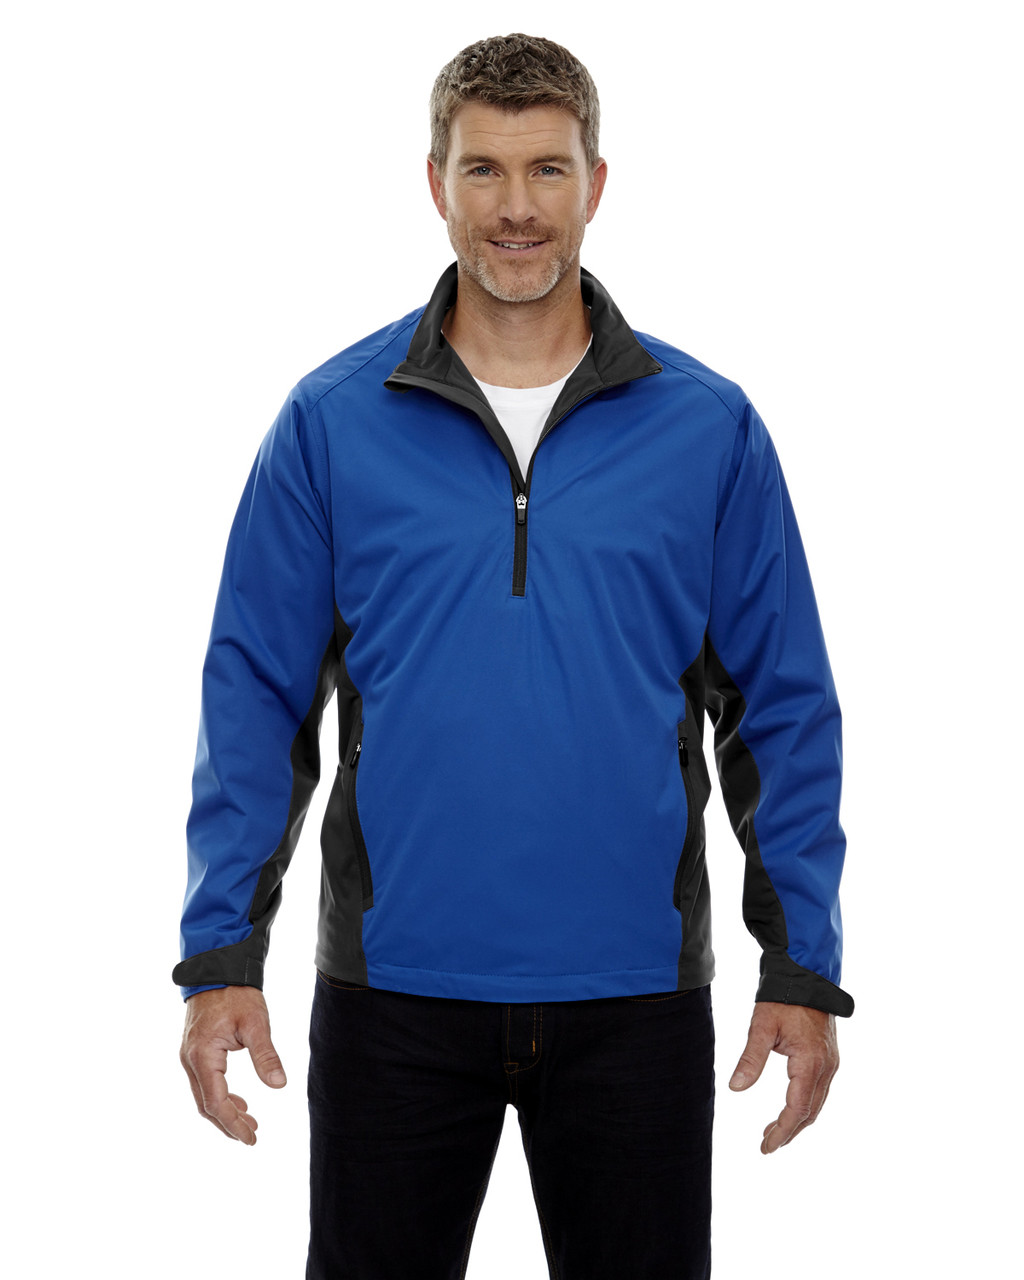 Nautical Blue - 88656 North End Sport Red Laminated Performance Stretch Wind Shirt